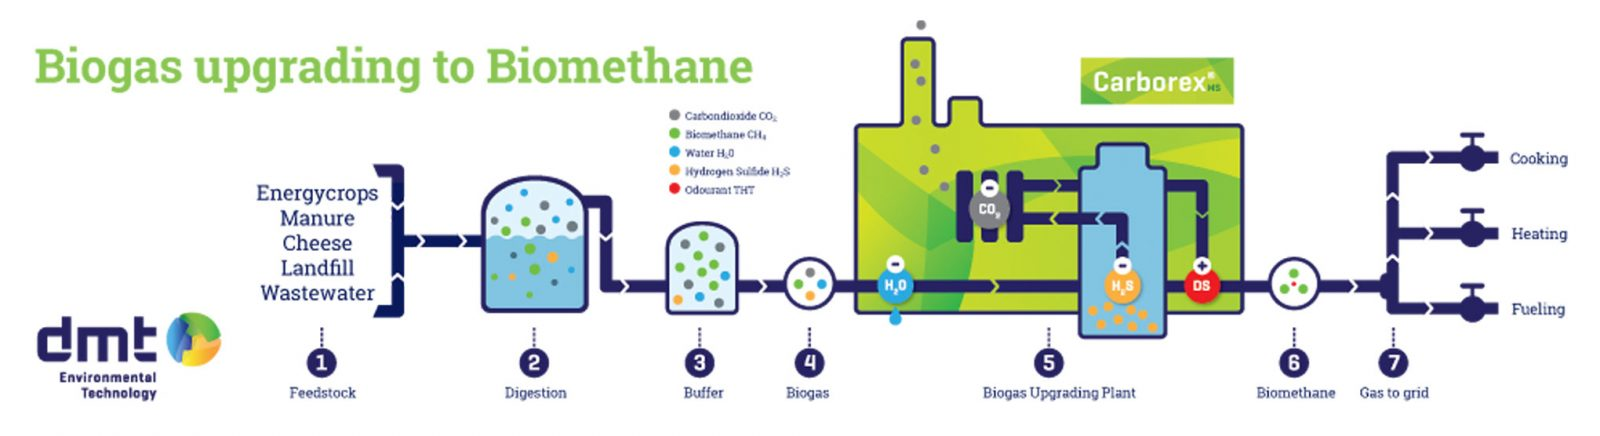 Carborex MS Biogas upgrading to biomethane